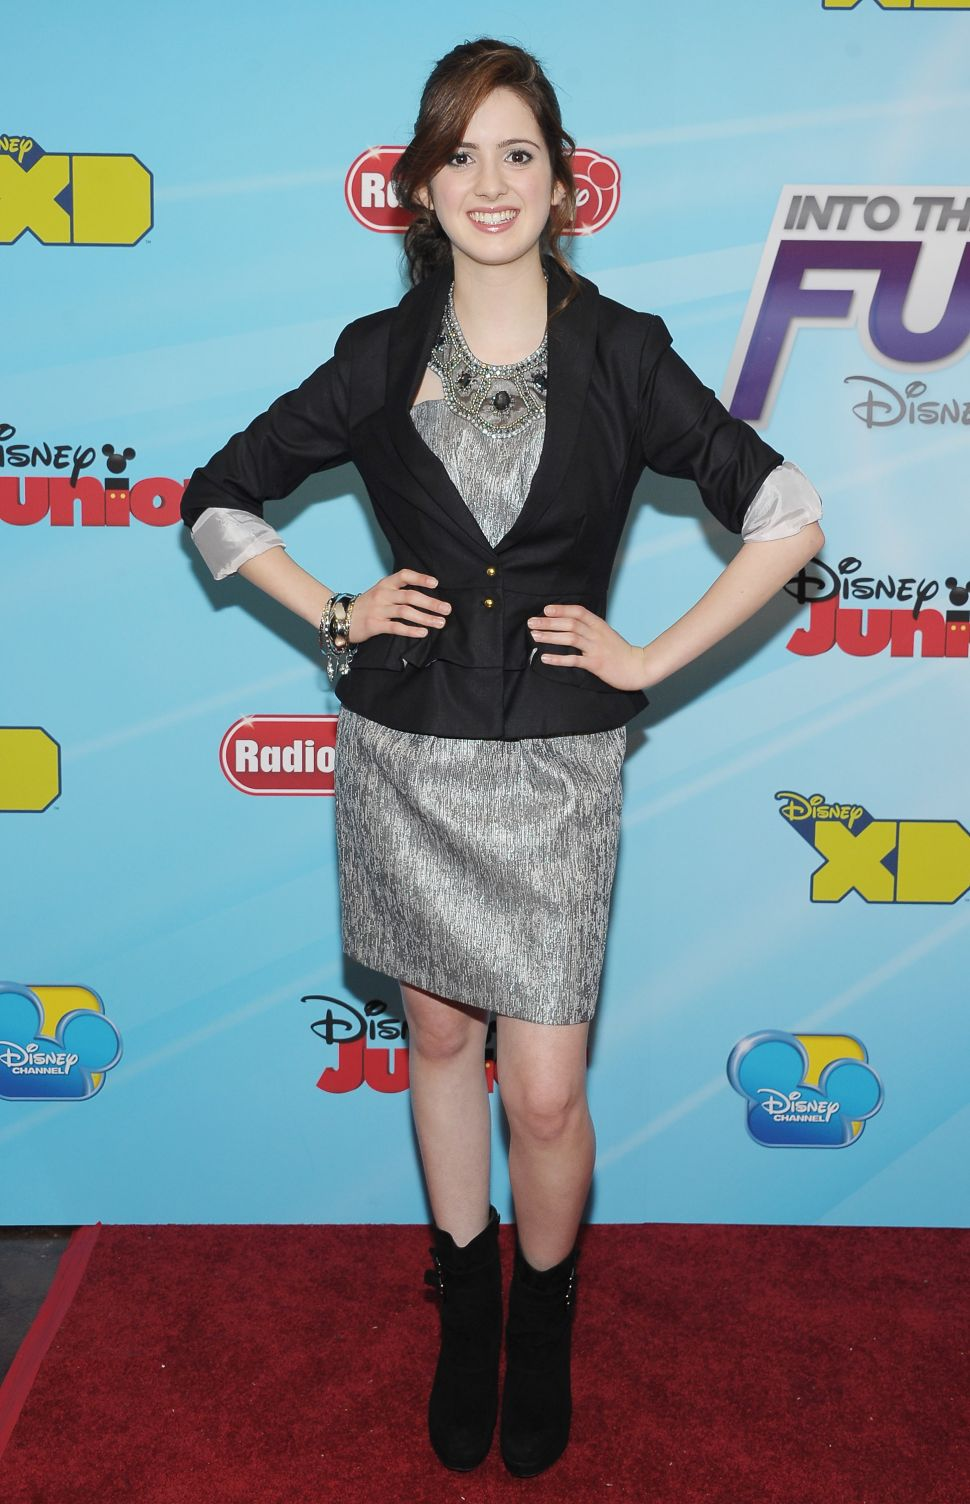 Recapping the Upfronts: The Disney Channel at Hard Rock Cafe